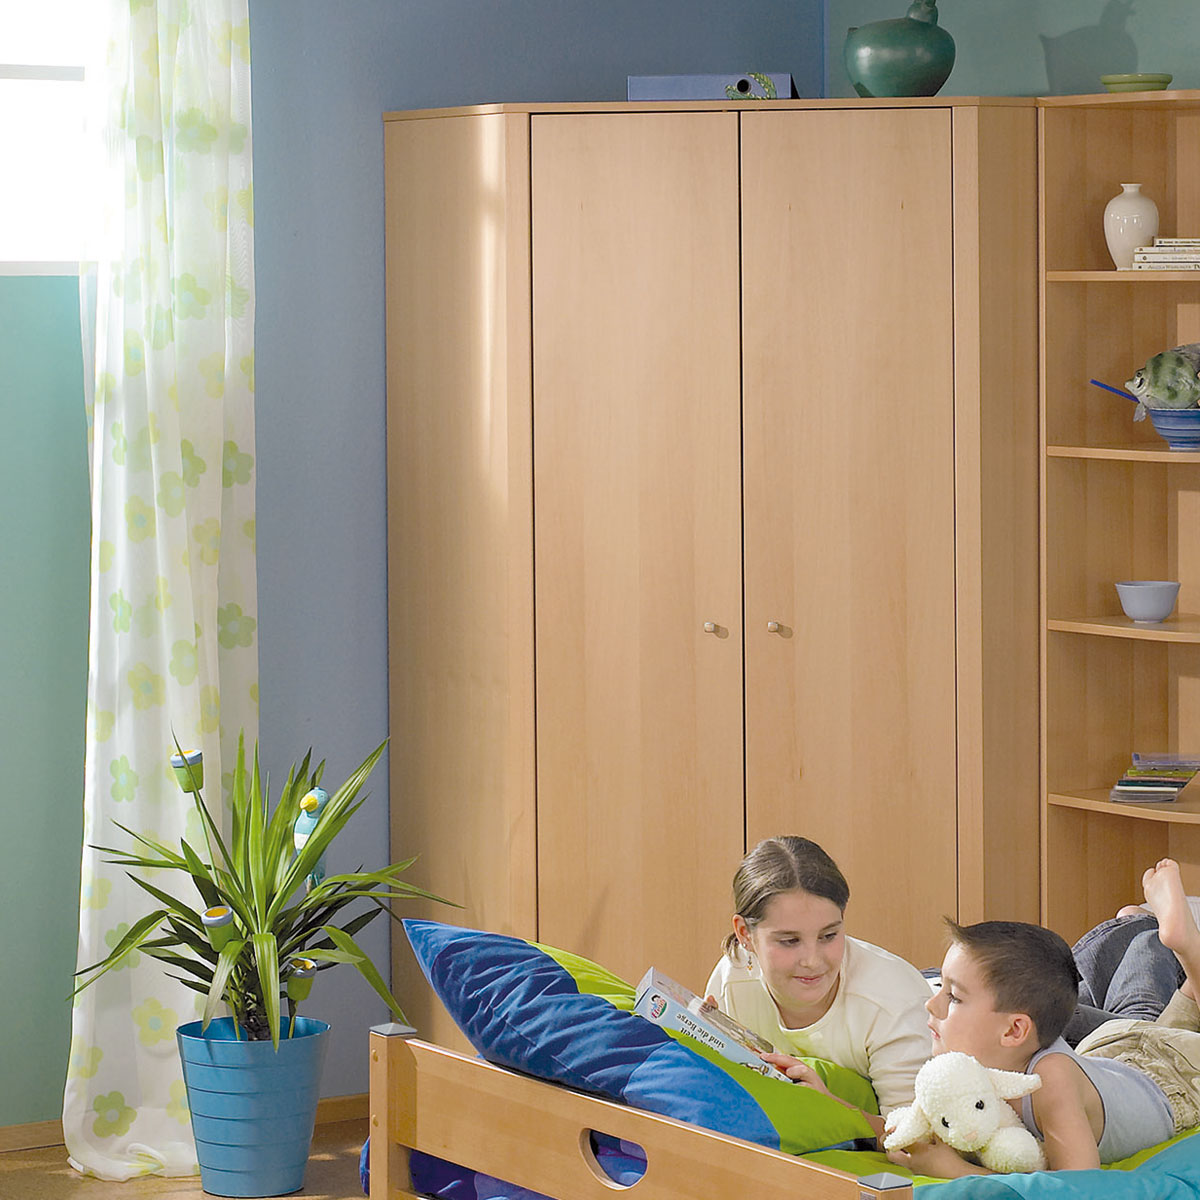 eckkleiderschrank kinderzimmer kreative ideen f r design und wohnm bel. Black Bedroom Furniture Sets. Home Design Ideas